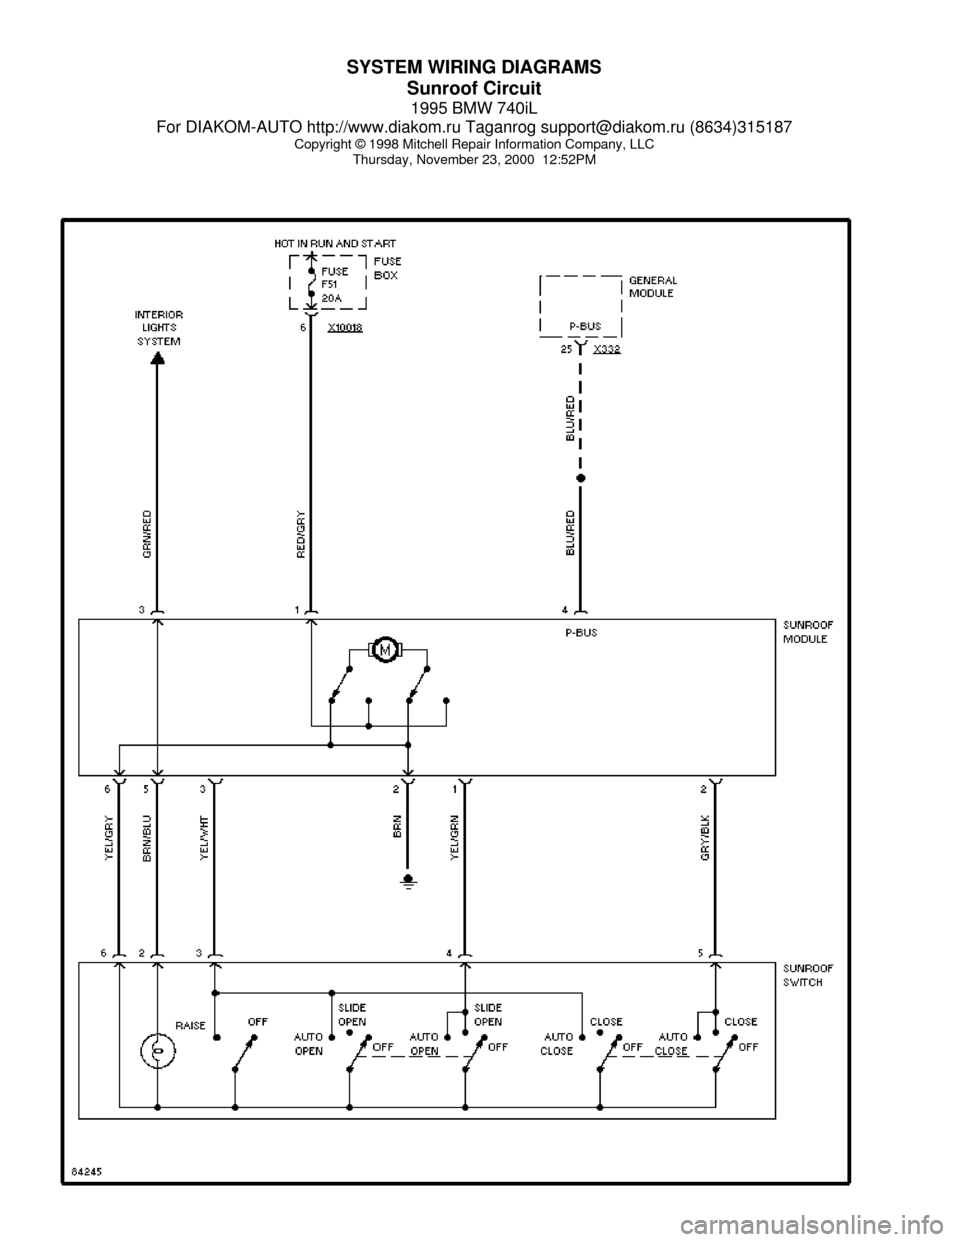 1998 Bmw Radio Wiring Diagram Manual Of Z3 Stereo E46 Diagrams R1200rt